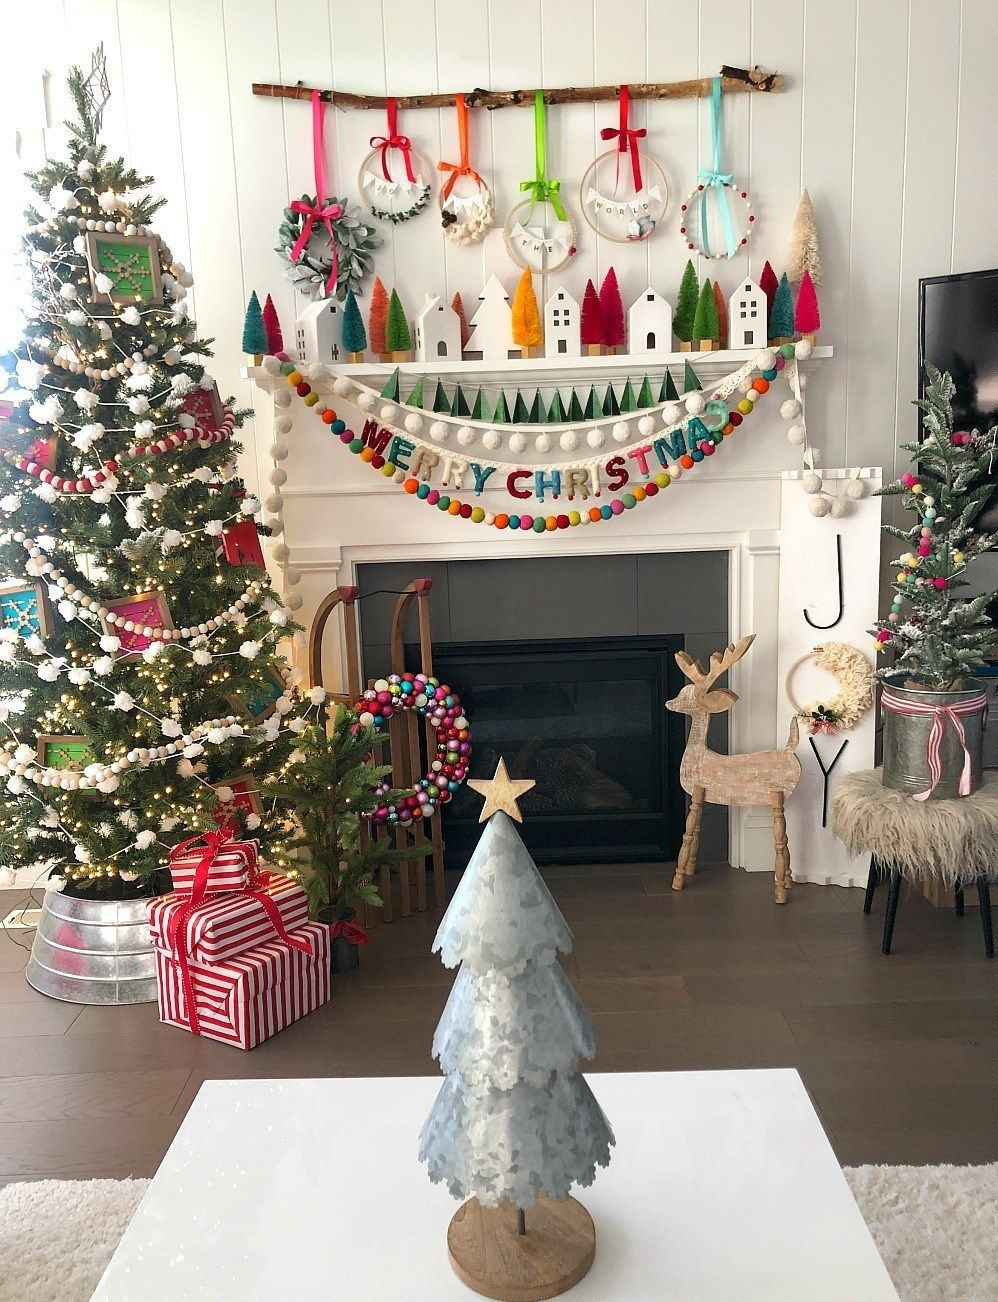 DIY-Christmas-living-room-decorations 70+ Impressive Christmas Decorations to Do Yourself in 2021